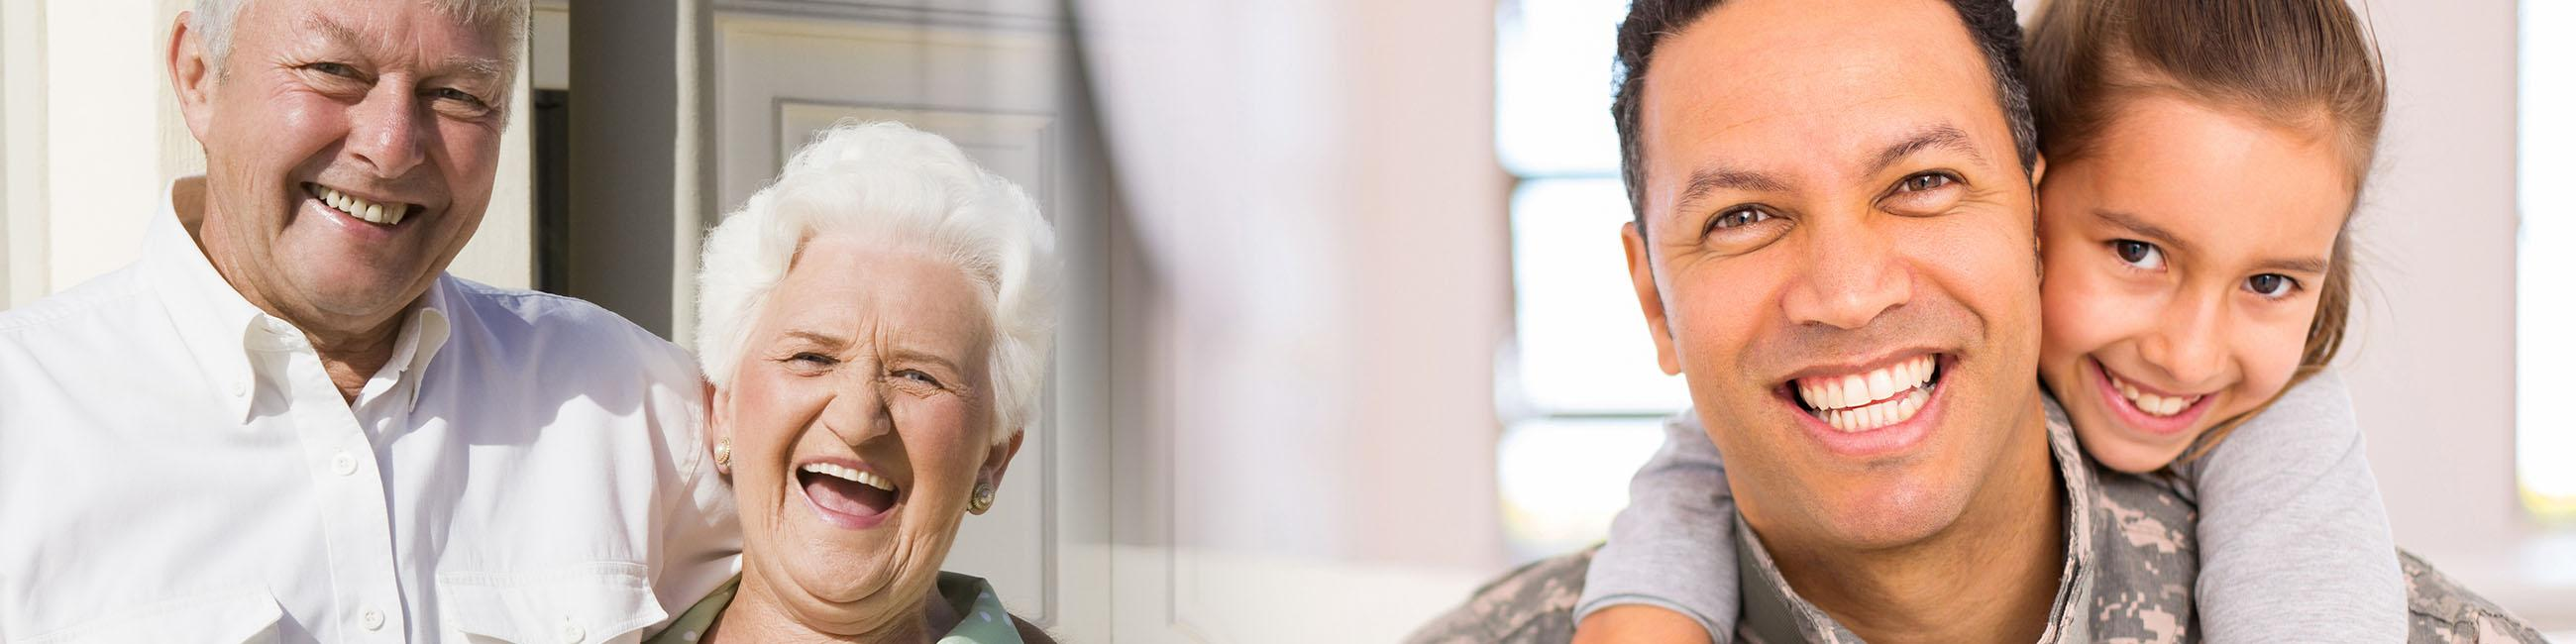 Senior and Military Discounts, Air Conditioning & Heating, Orange County, CA